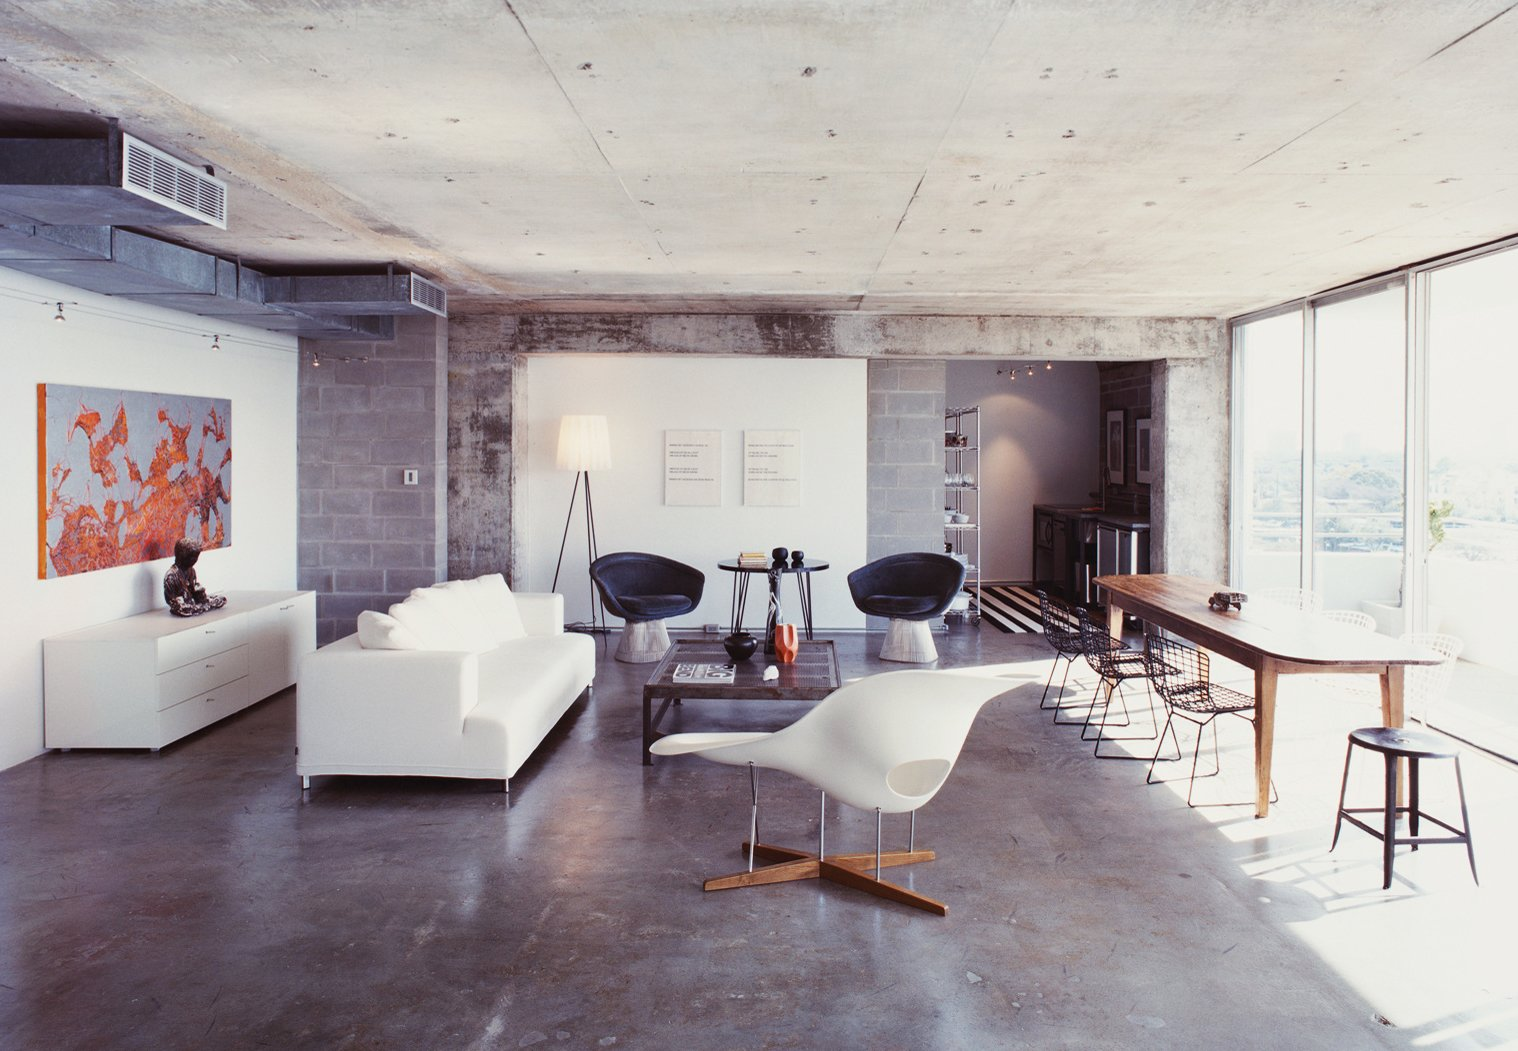 """When Barbara Hill purchased a 1960s Houston condo she completely stripped its interior, seeking a minimal restart. When the apartment was down to its original mottled concrete walls and floors Hill decided to keep everything exactly the way it was. """"Once I saw the exposed space, I couldn't bear to put anything back,"""" she says.  Striking Exposed Concrete Interiors by William Harrison"""